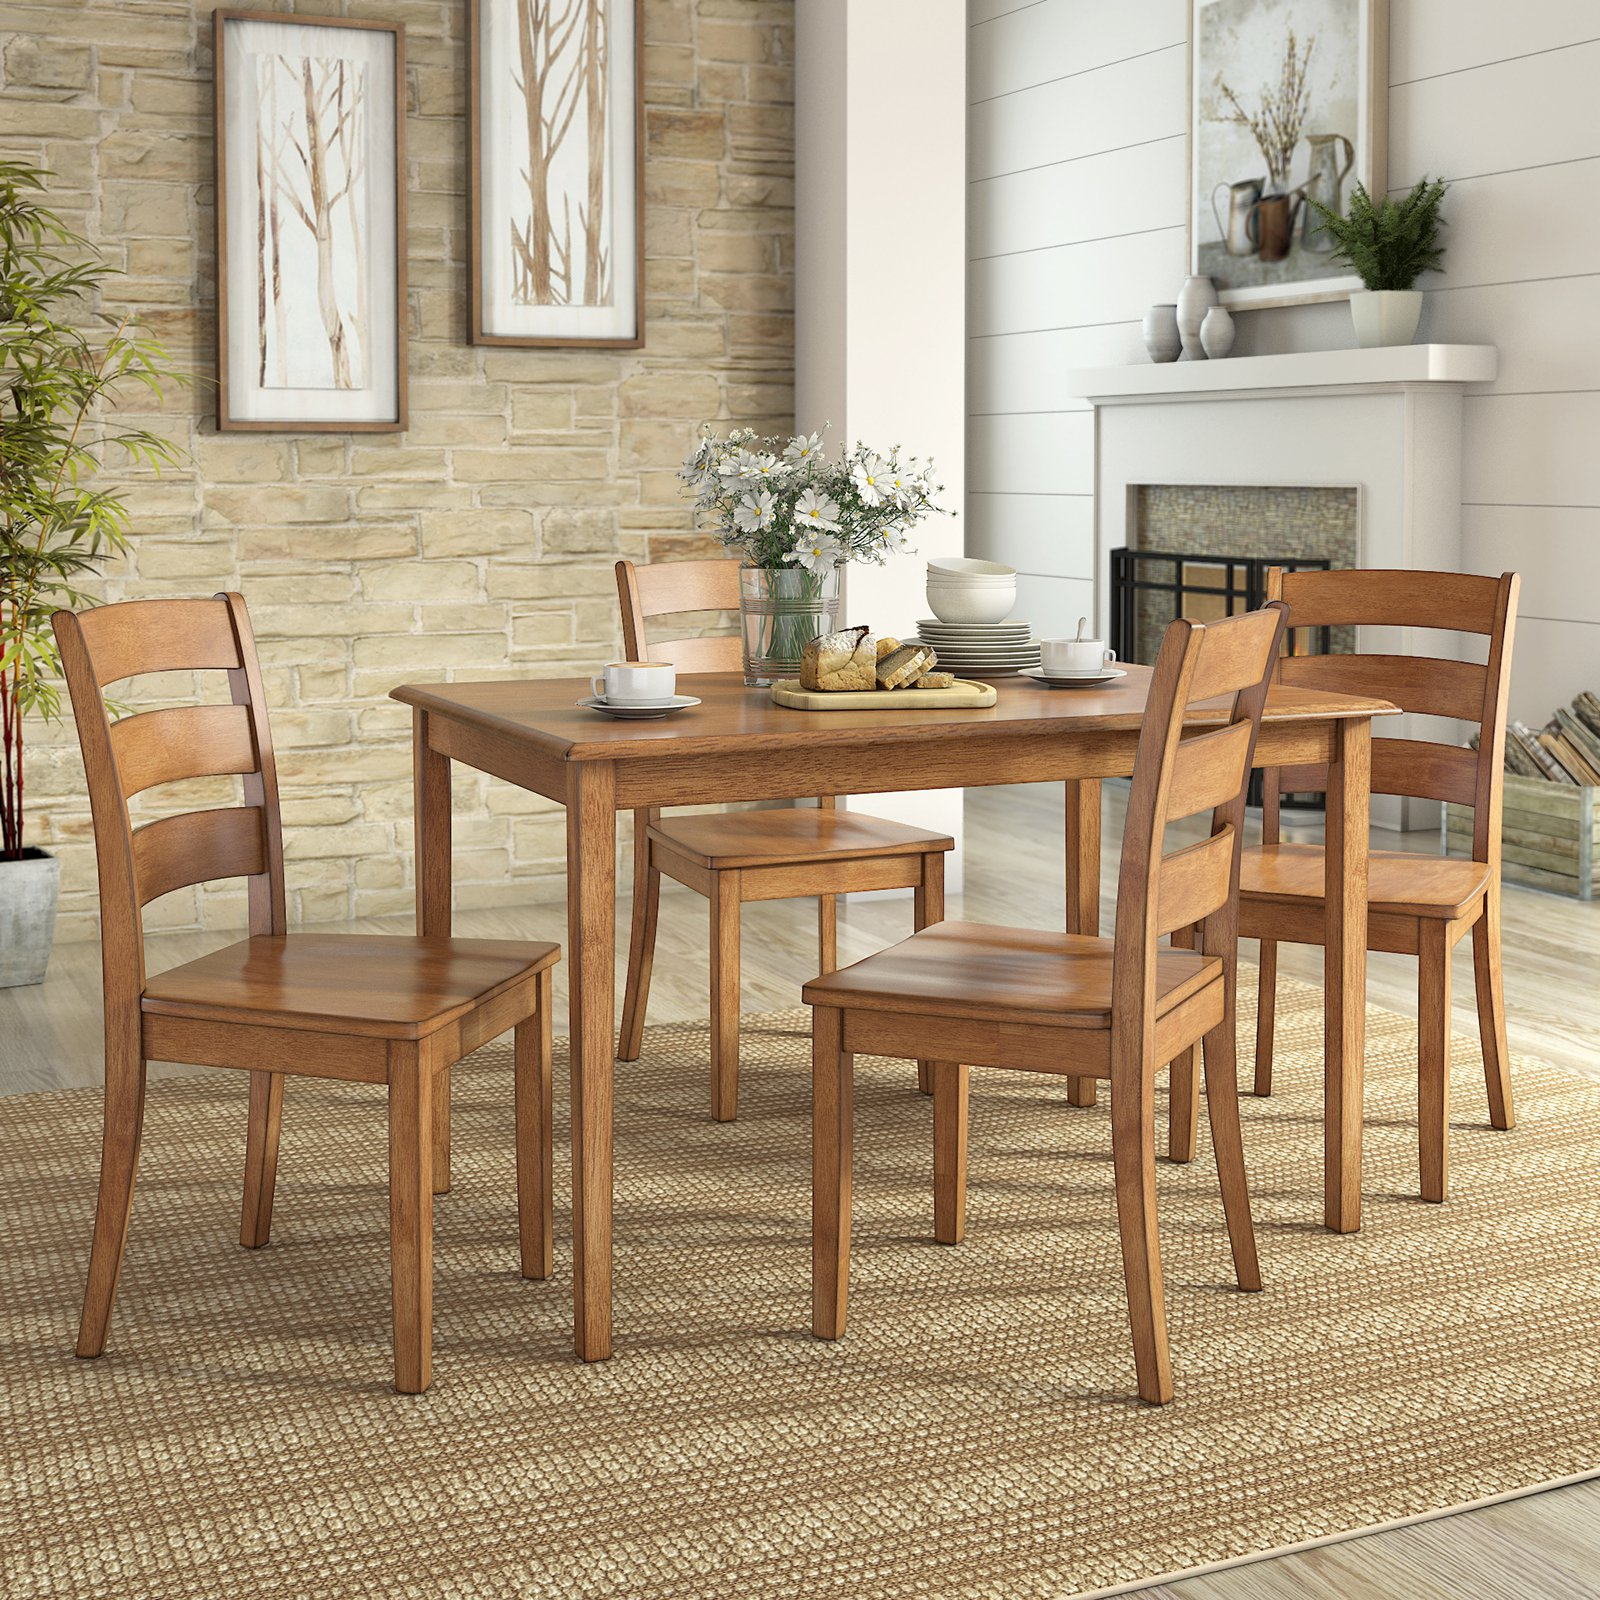 Product image weston home lexington 5 piece dining set with 4 ladder back chairs